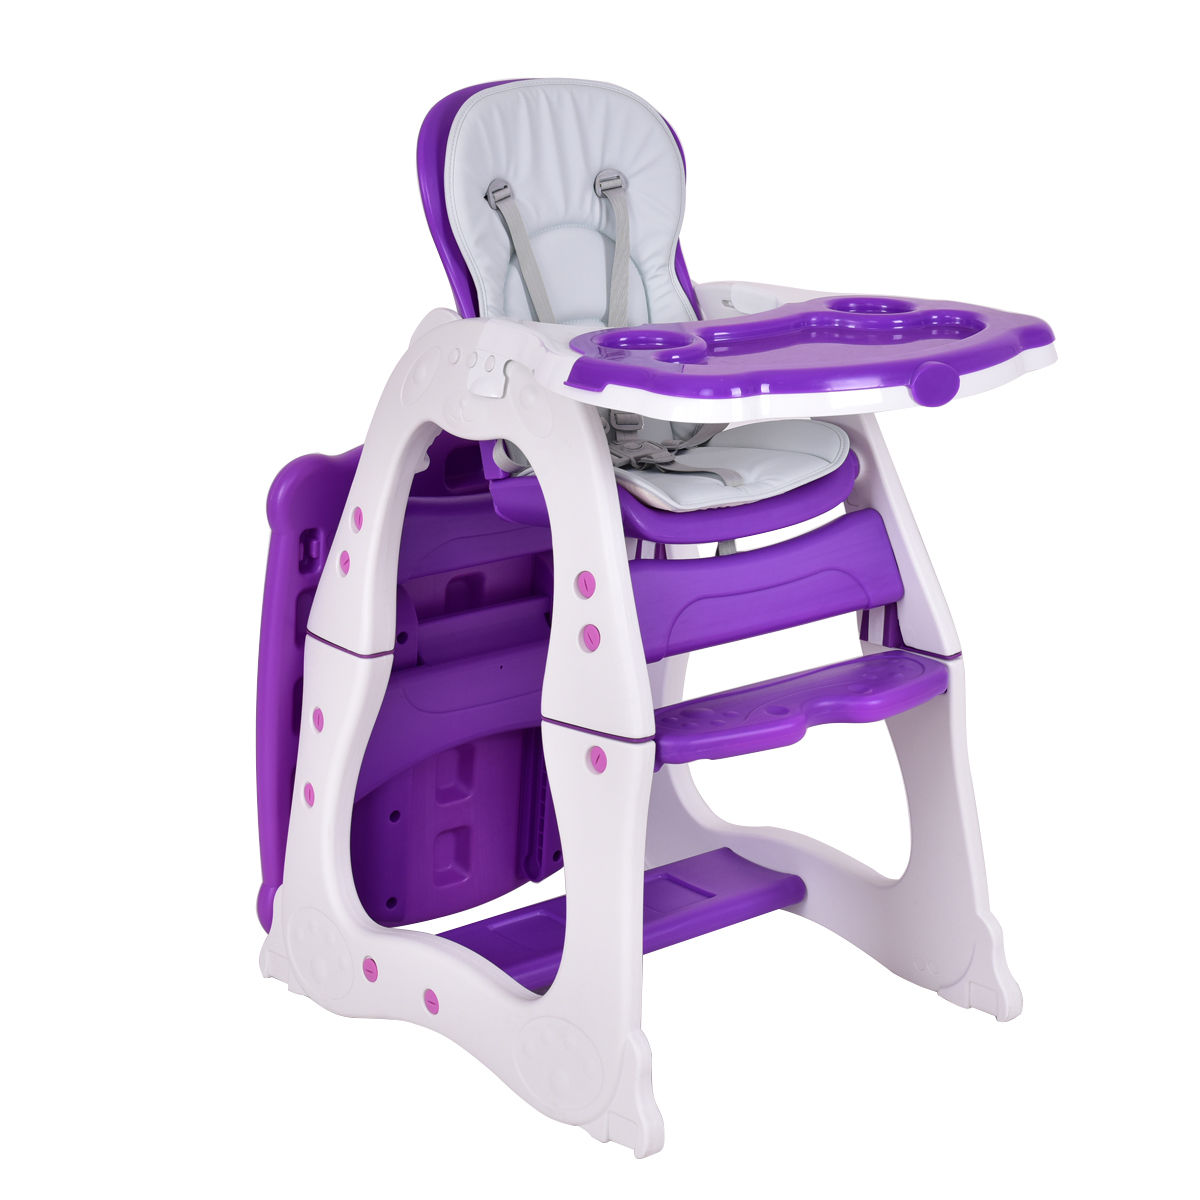 Costway 3 in 1 Baby High Chair Convertible Play Table Seat Booster Toddler Feeding Tray by Costway